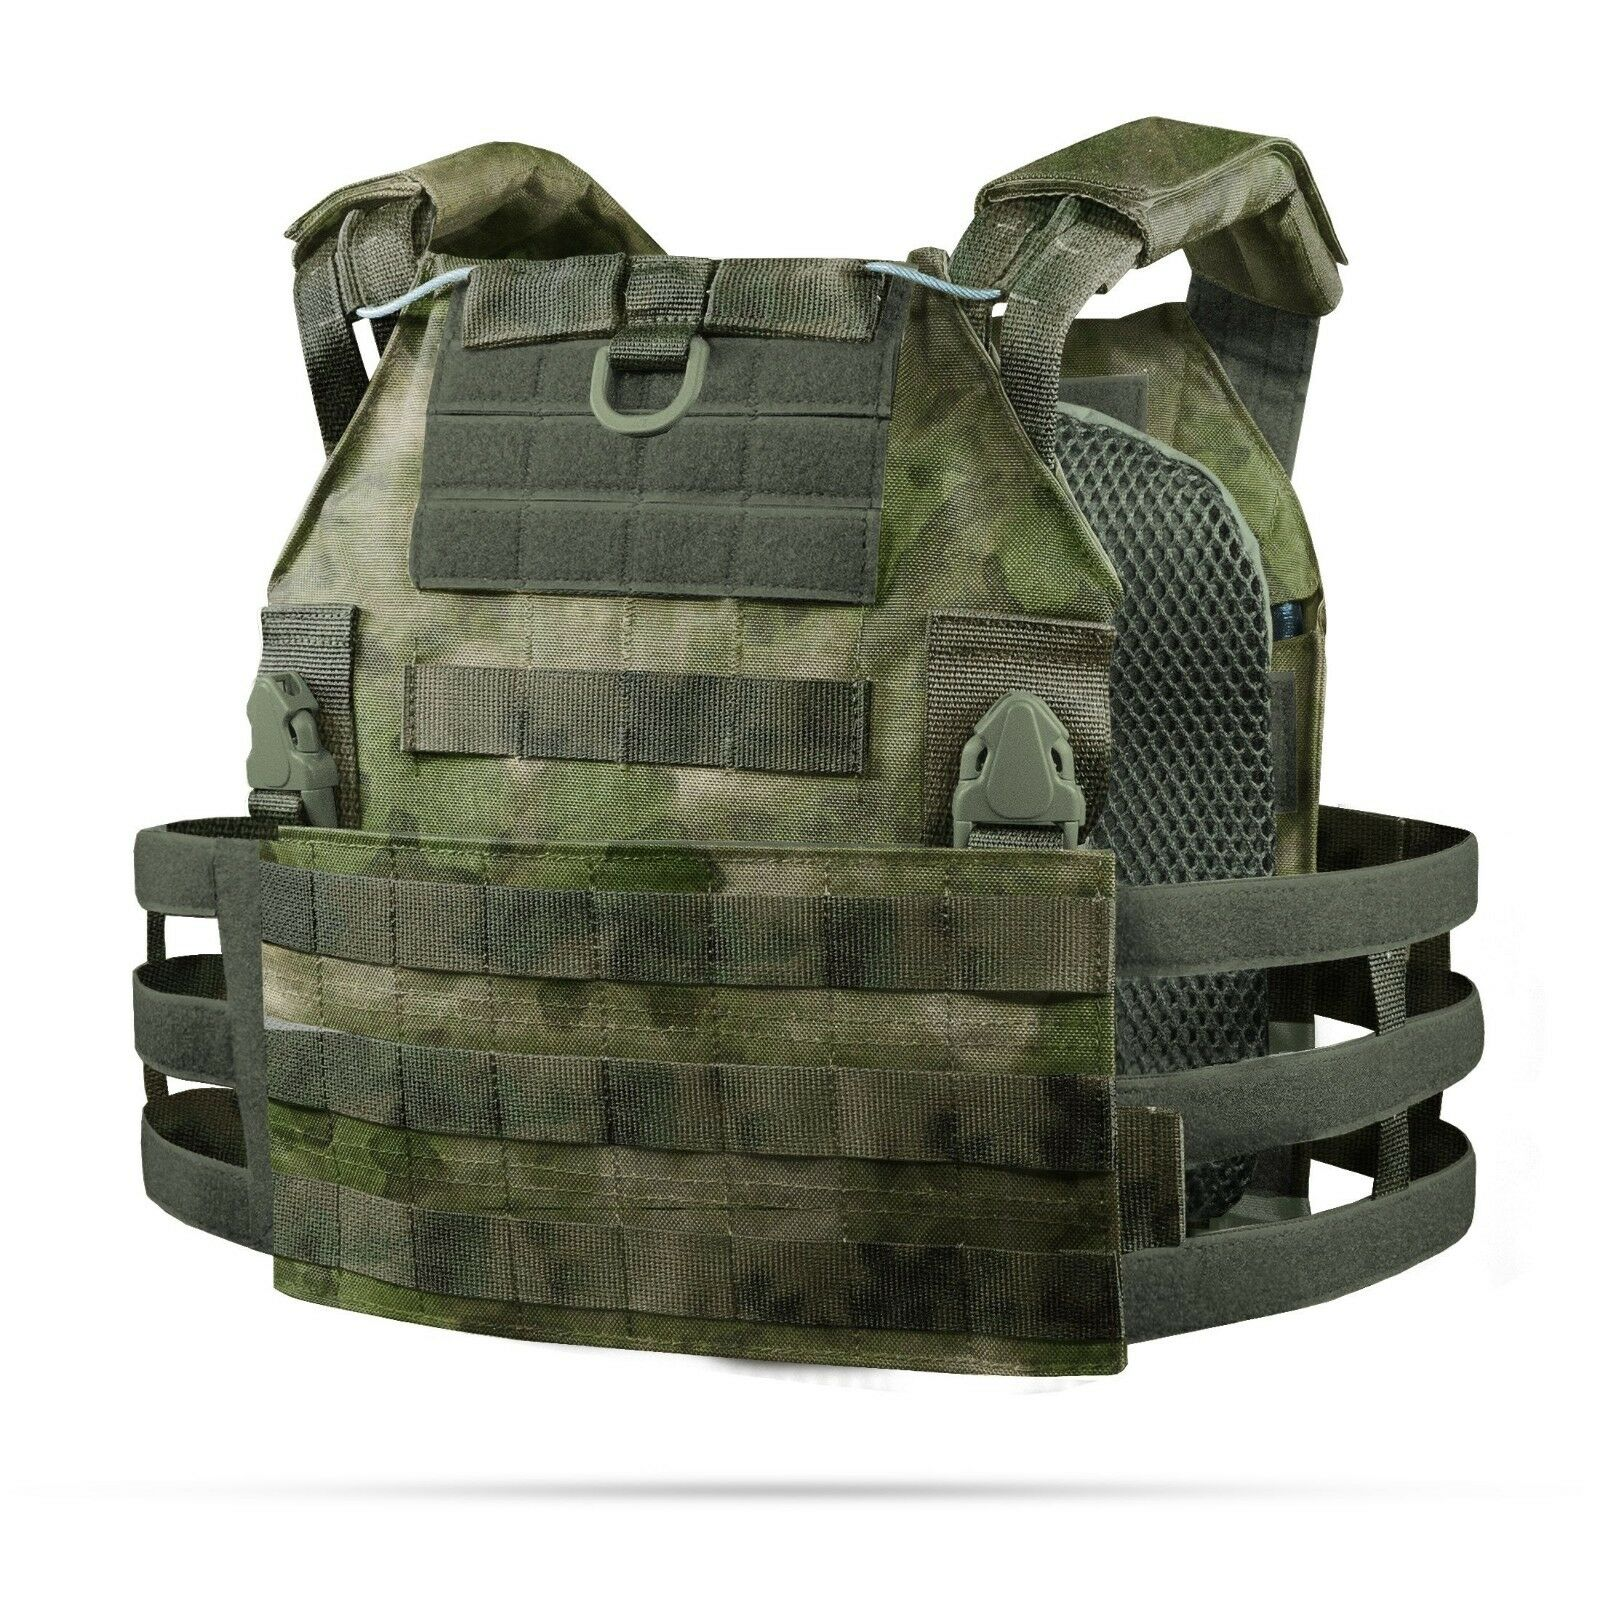 ARMY VEST PLATE CARRIER in A-TACS FG by STICH PROFI ( OTHER COLORS AVAILABLE )